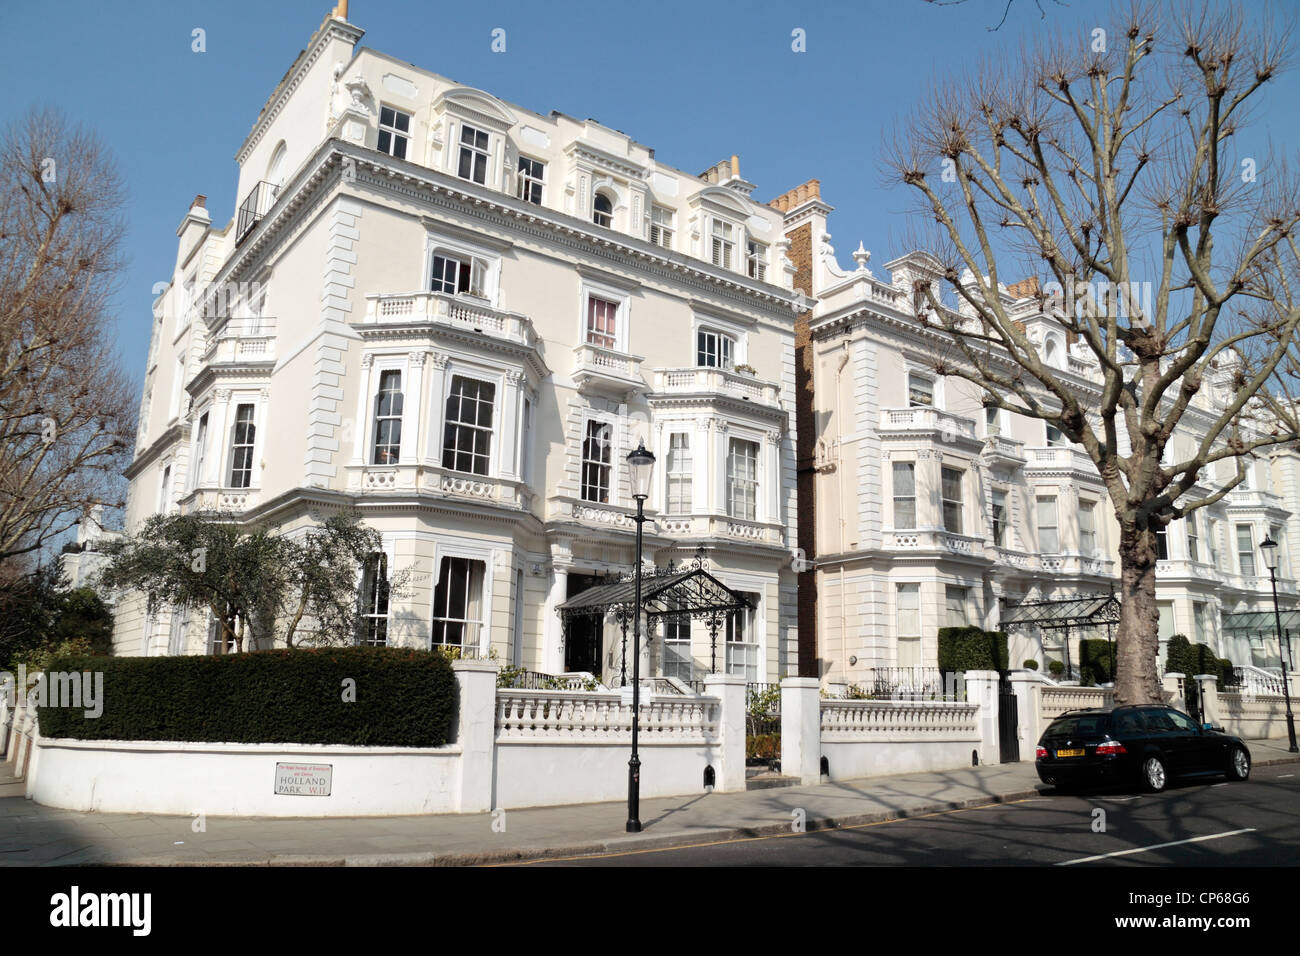 Exclusive Properties On Holland Park W11 In The Royal Borough Of Kensington  And Chelsea, London, UK. March 2012